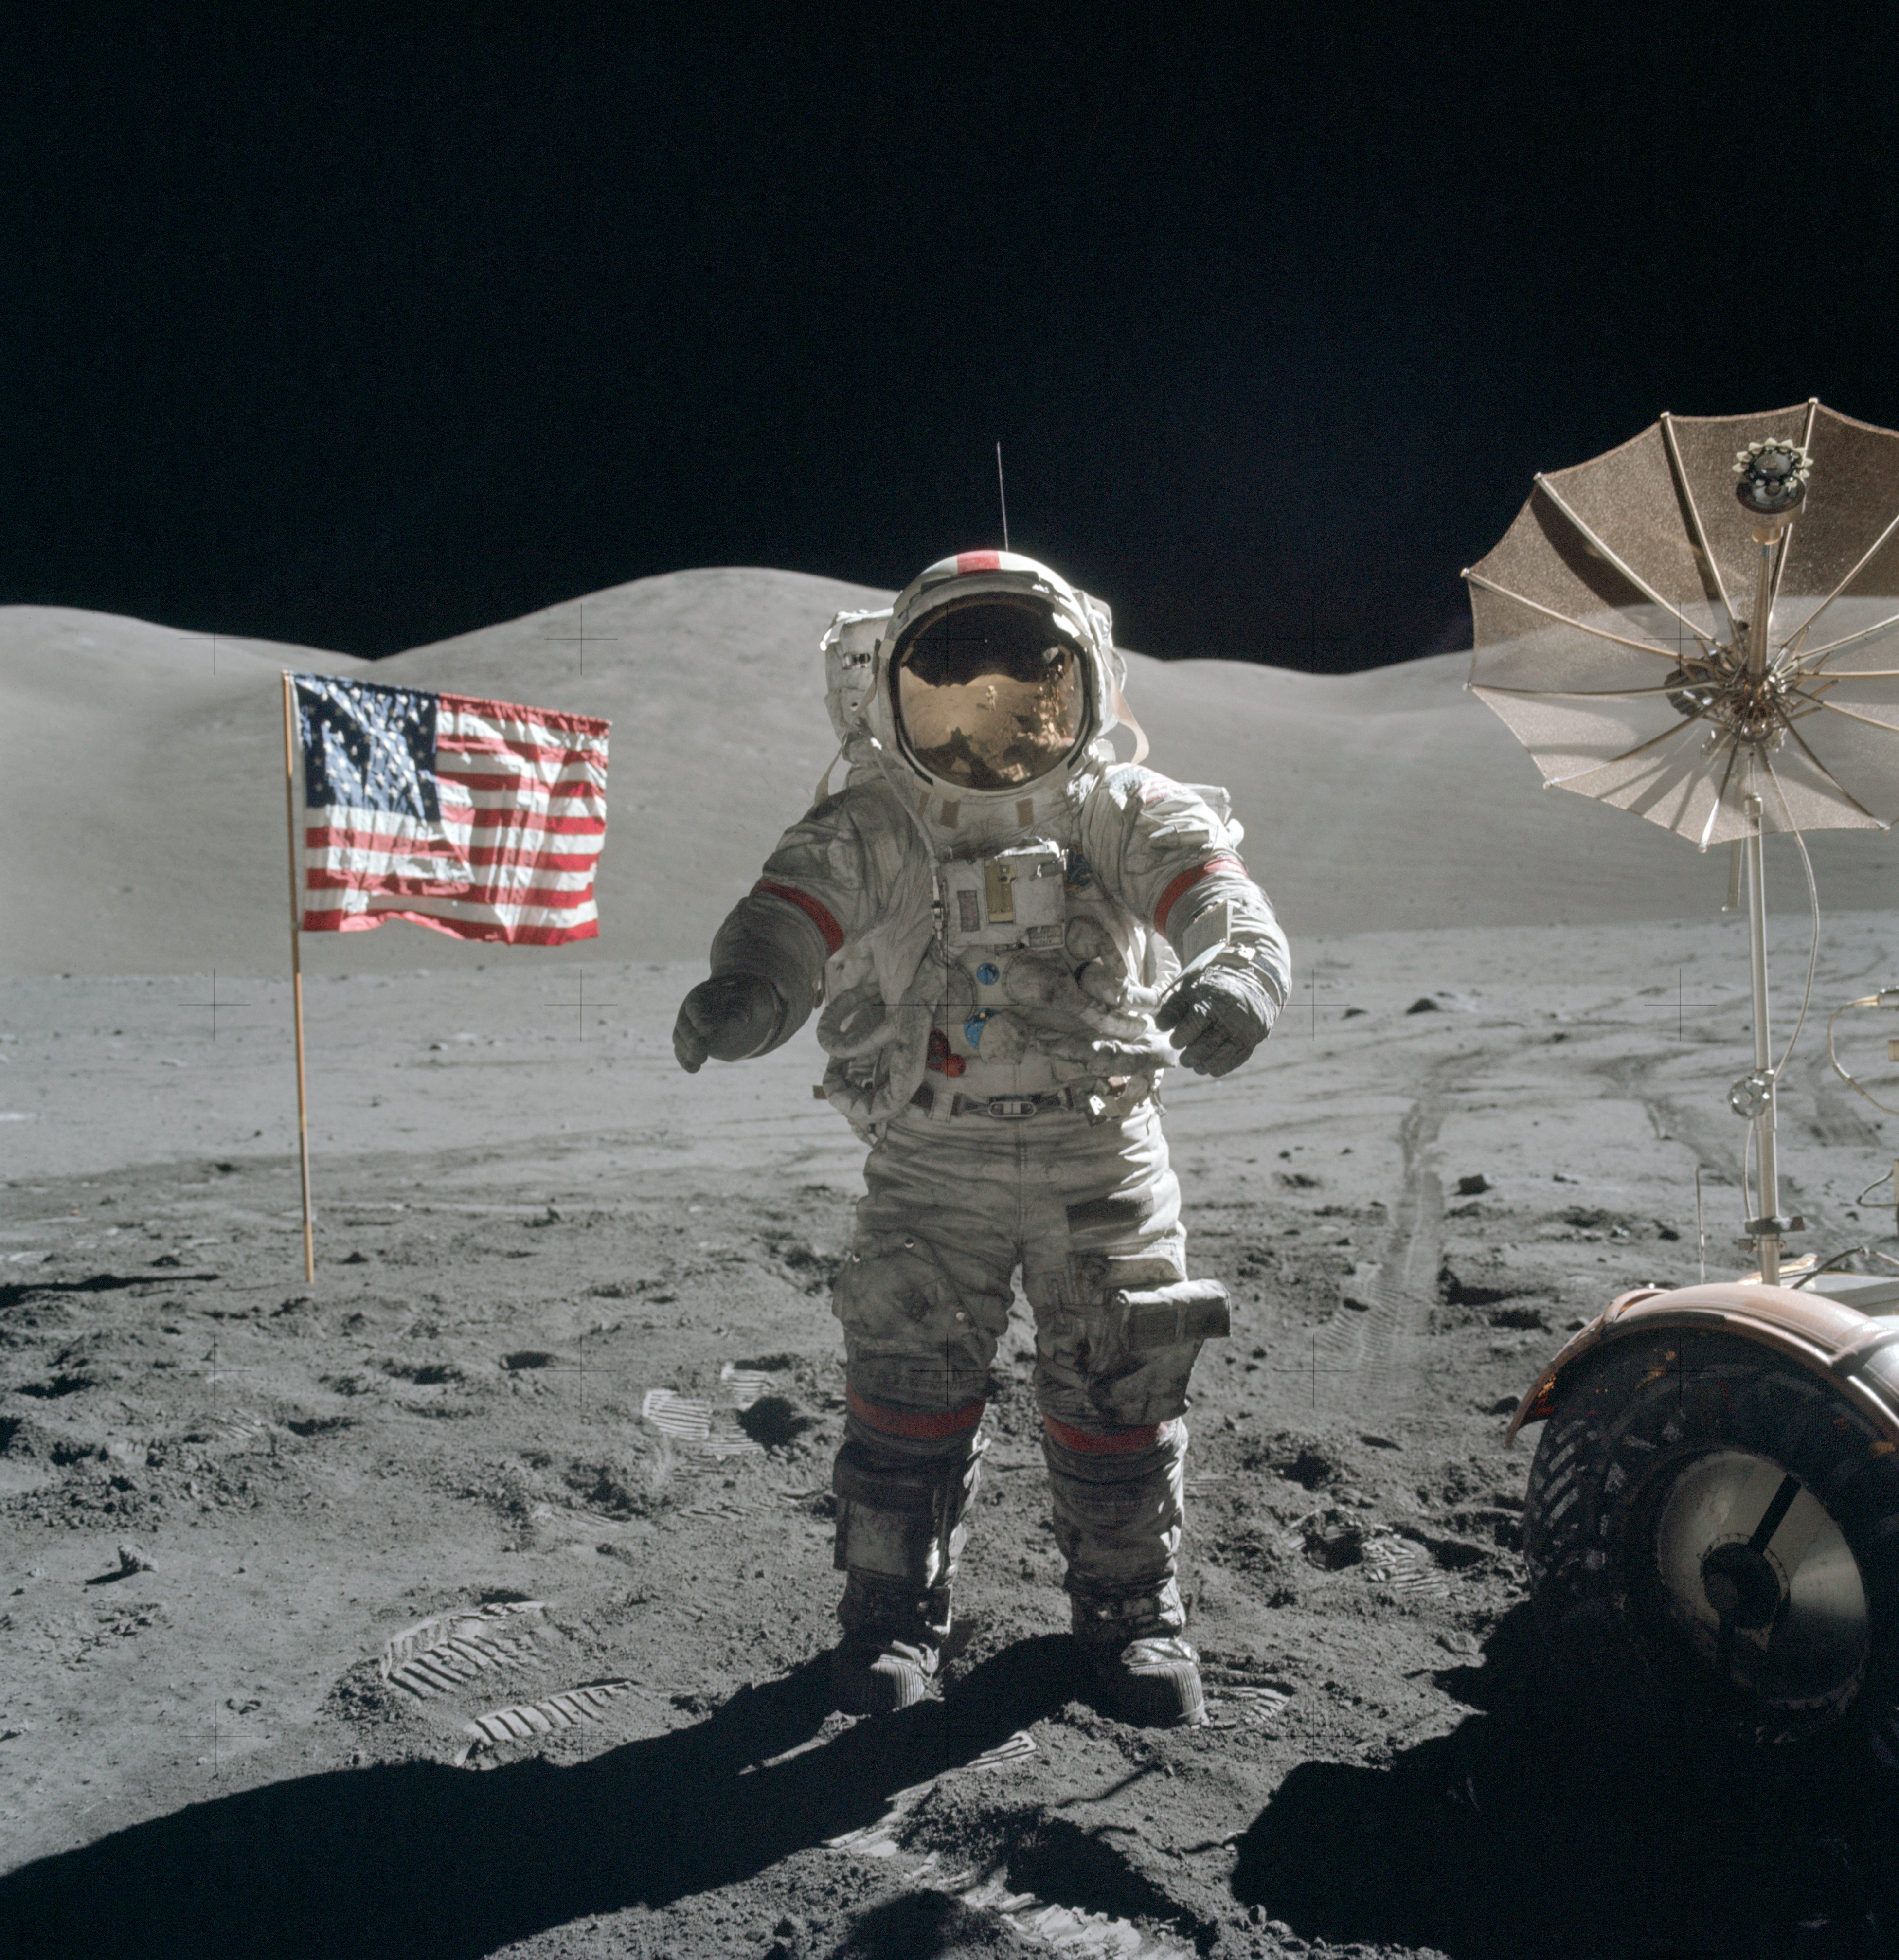 The Best Wallpapers Of The Apollo 11 Mission In 4k And Other